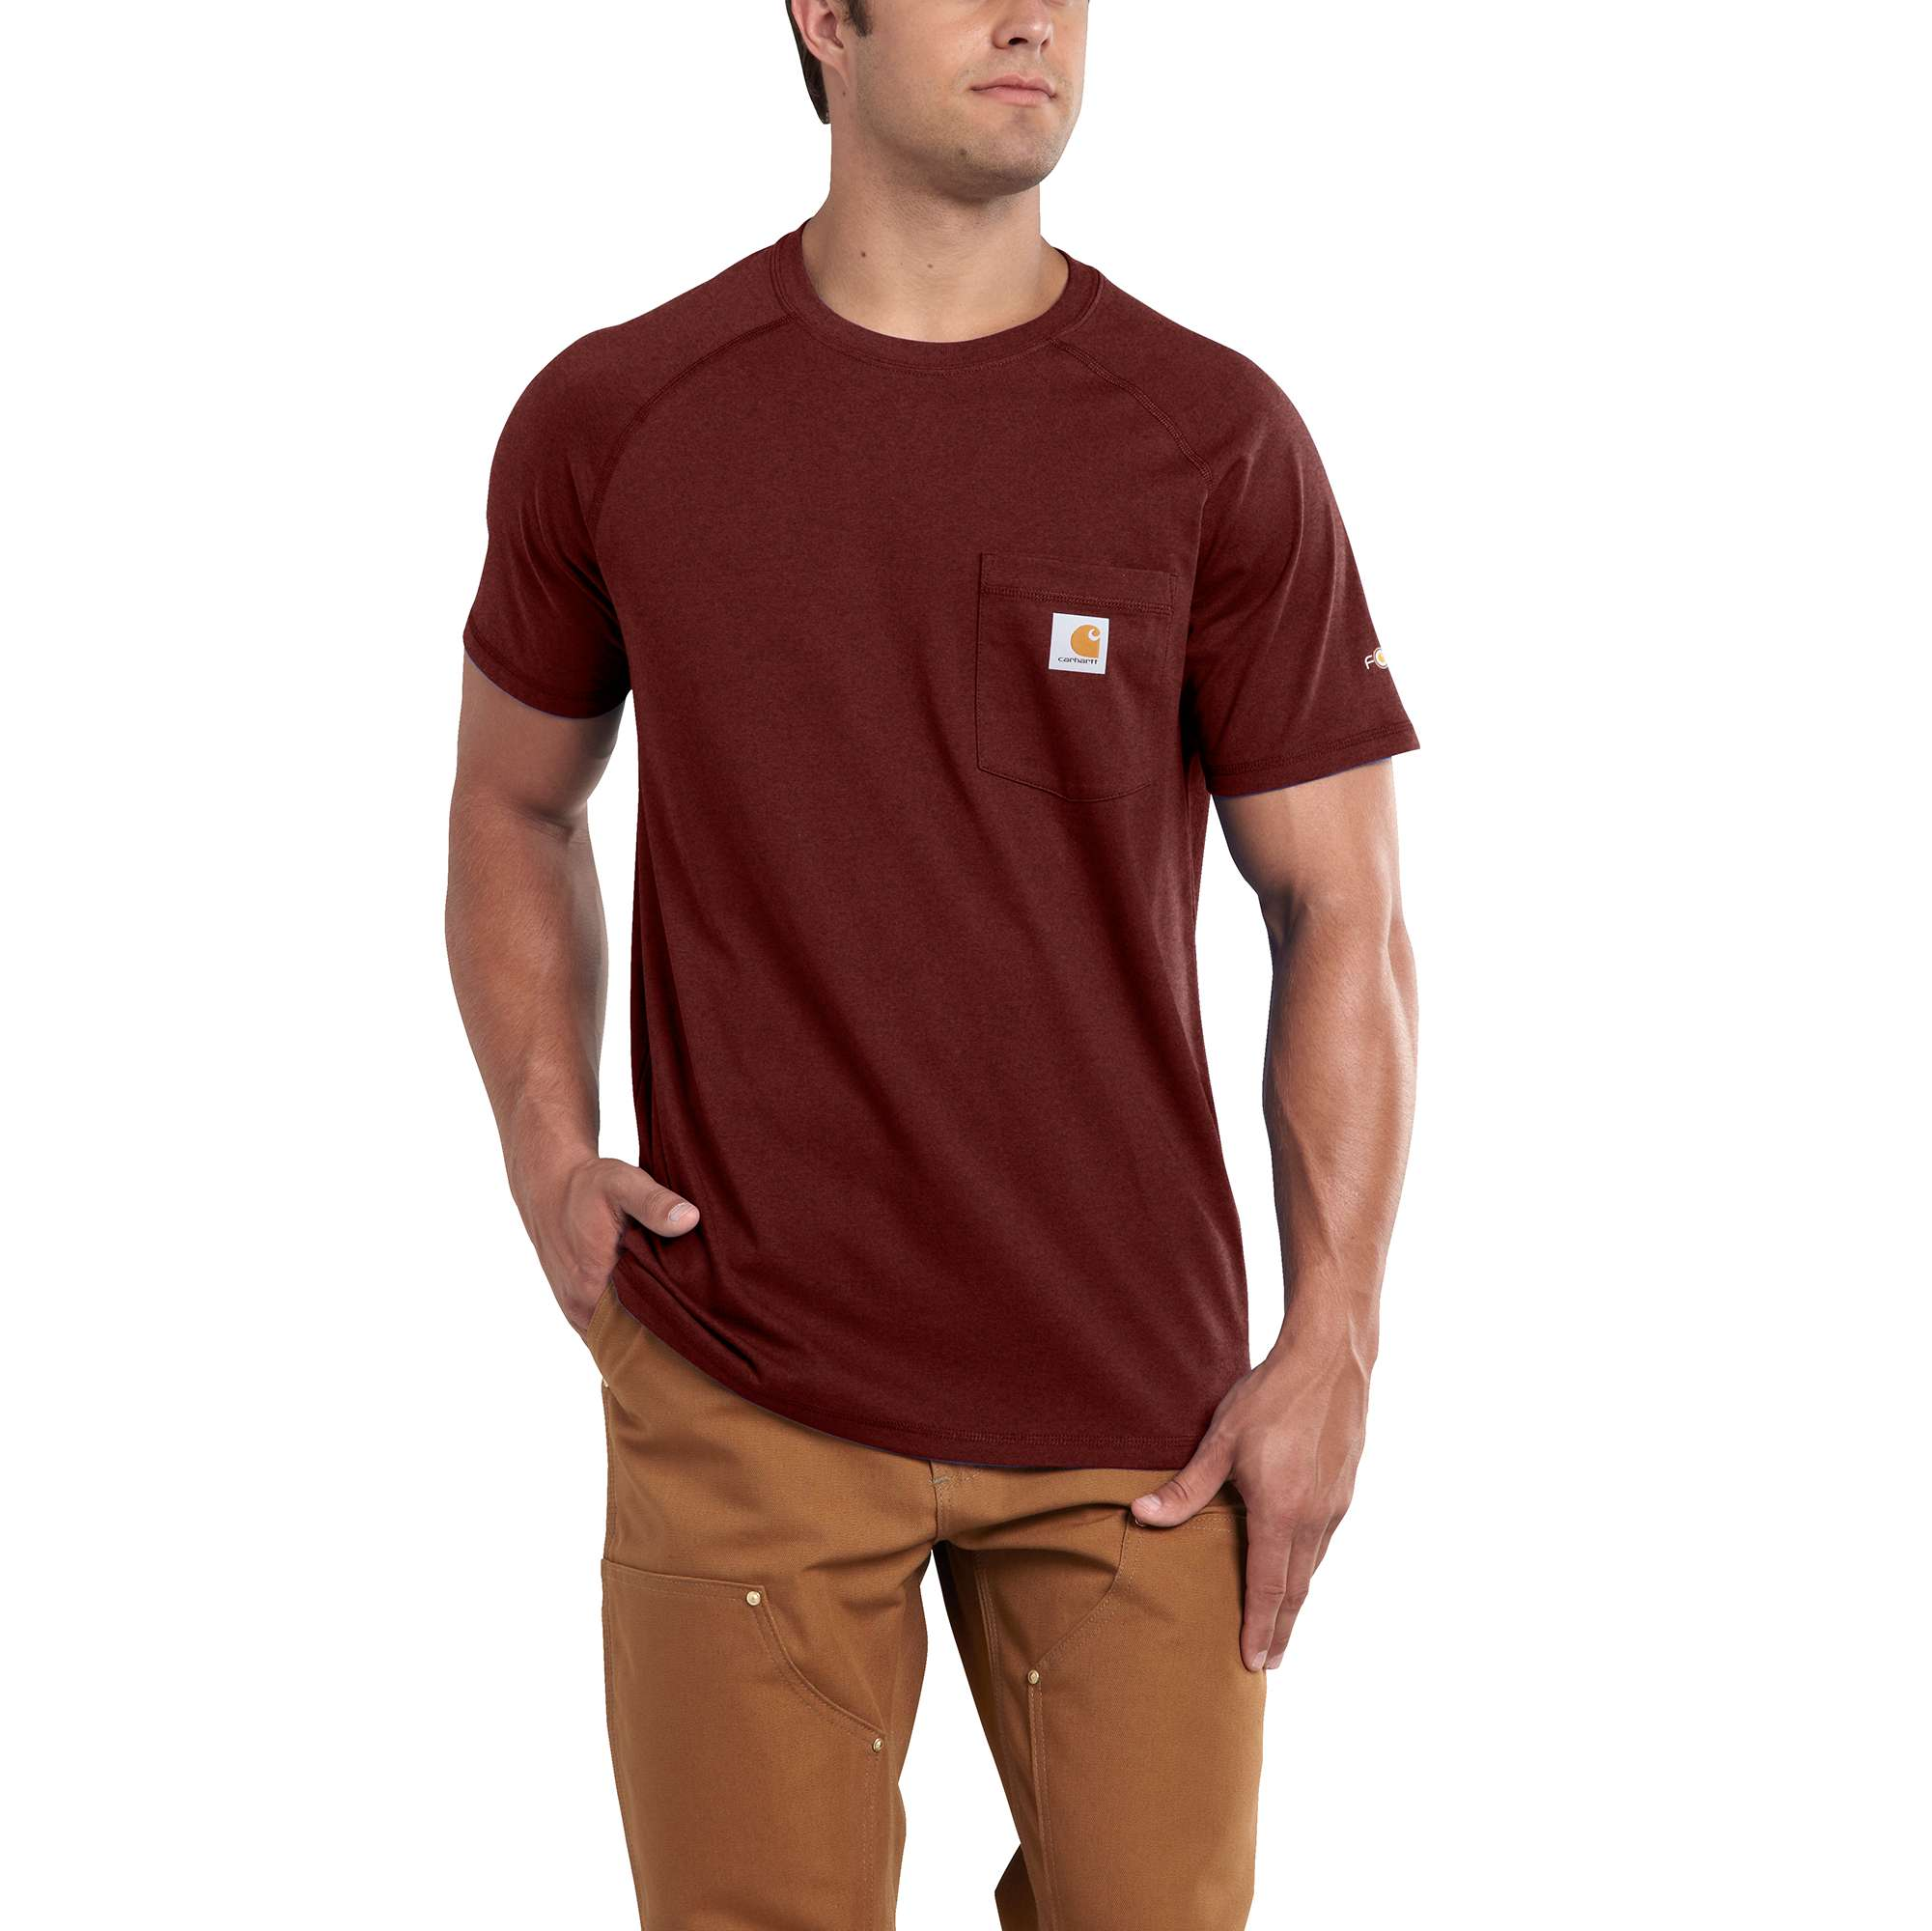 Men's Force Delmont Short Sleeve T-Shirt, Red/Brown, swatch